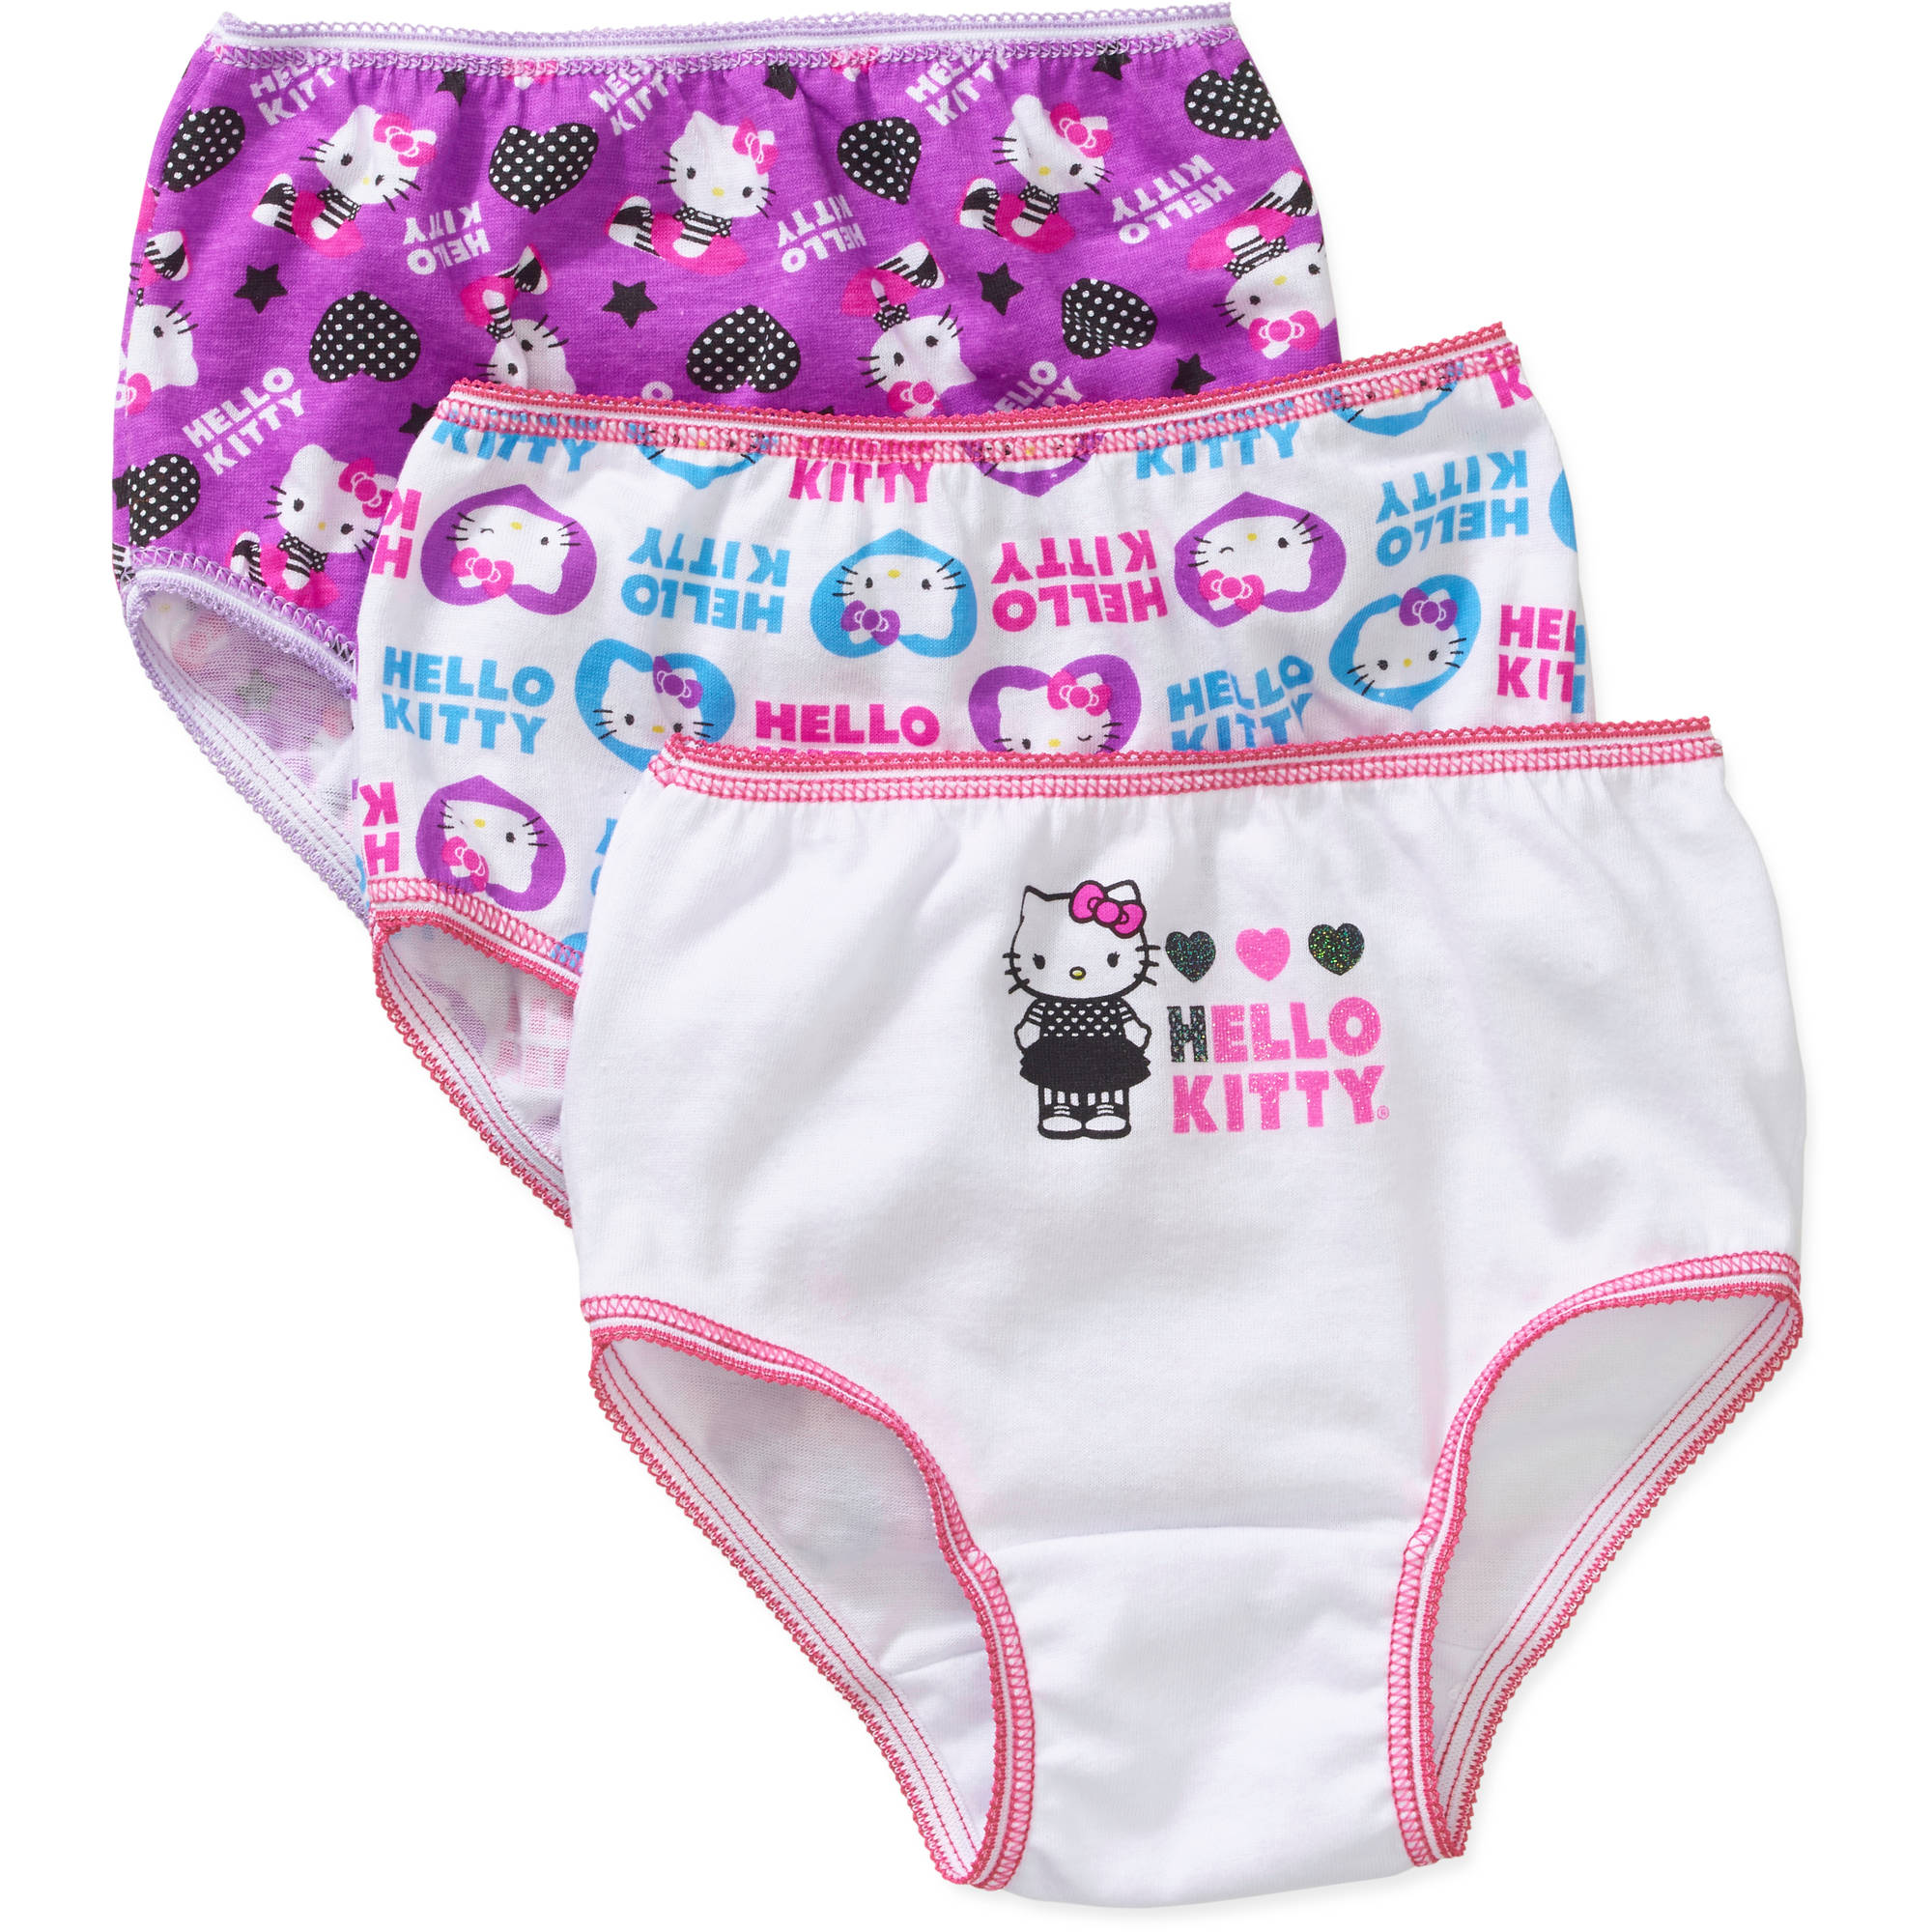 Hello Kitty Toddler Girls Underwear, 3 Pack